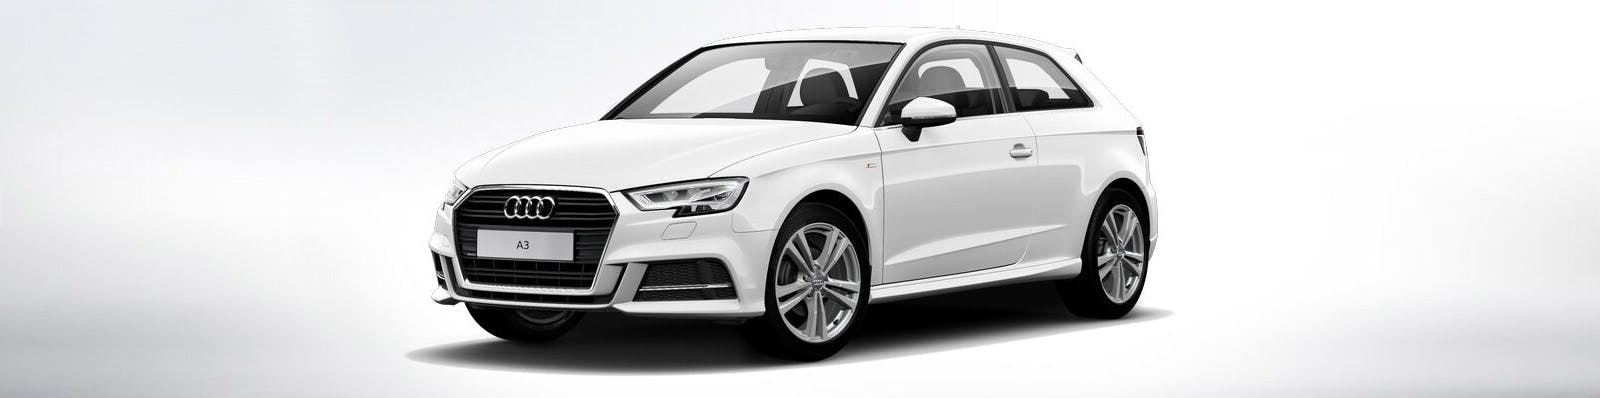 Audi A3 Sportback Saloon & Cabriolet colours guide   carwow